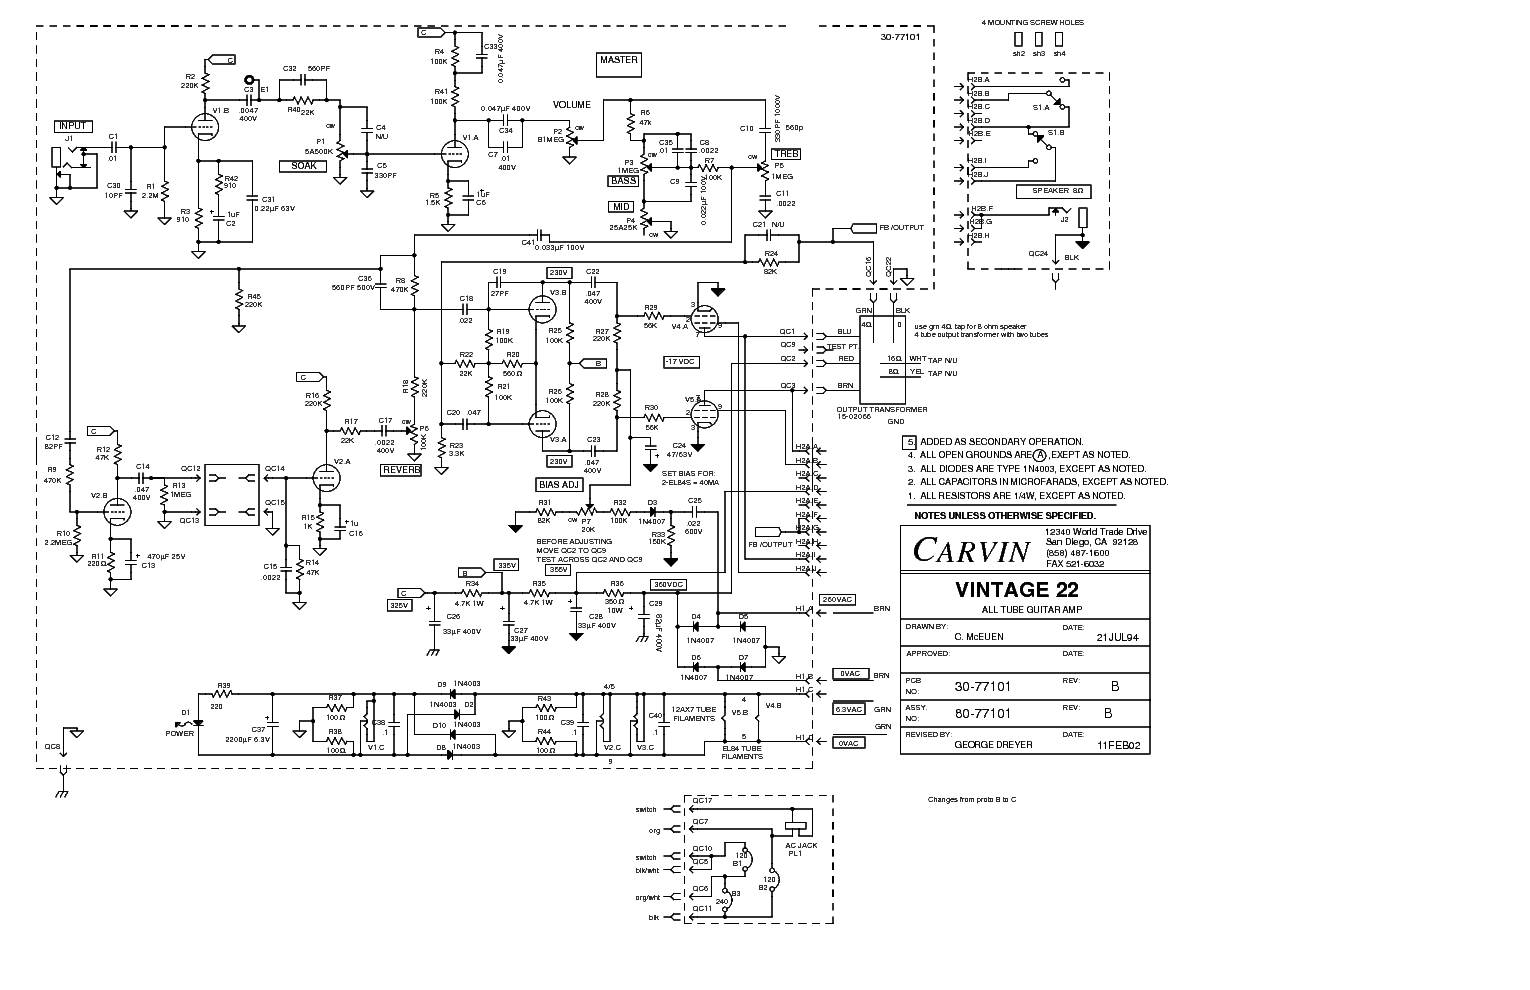 Carvin Vintage 22 Sch Service Manual Download Schematics